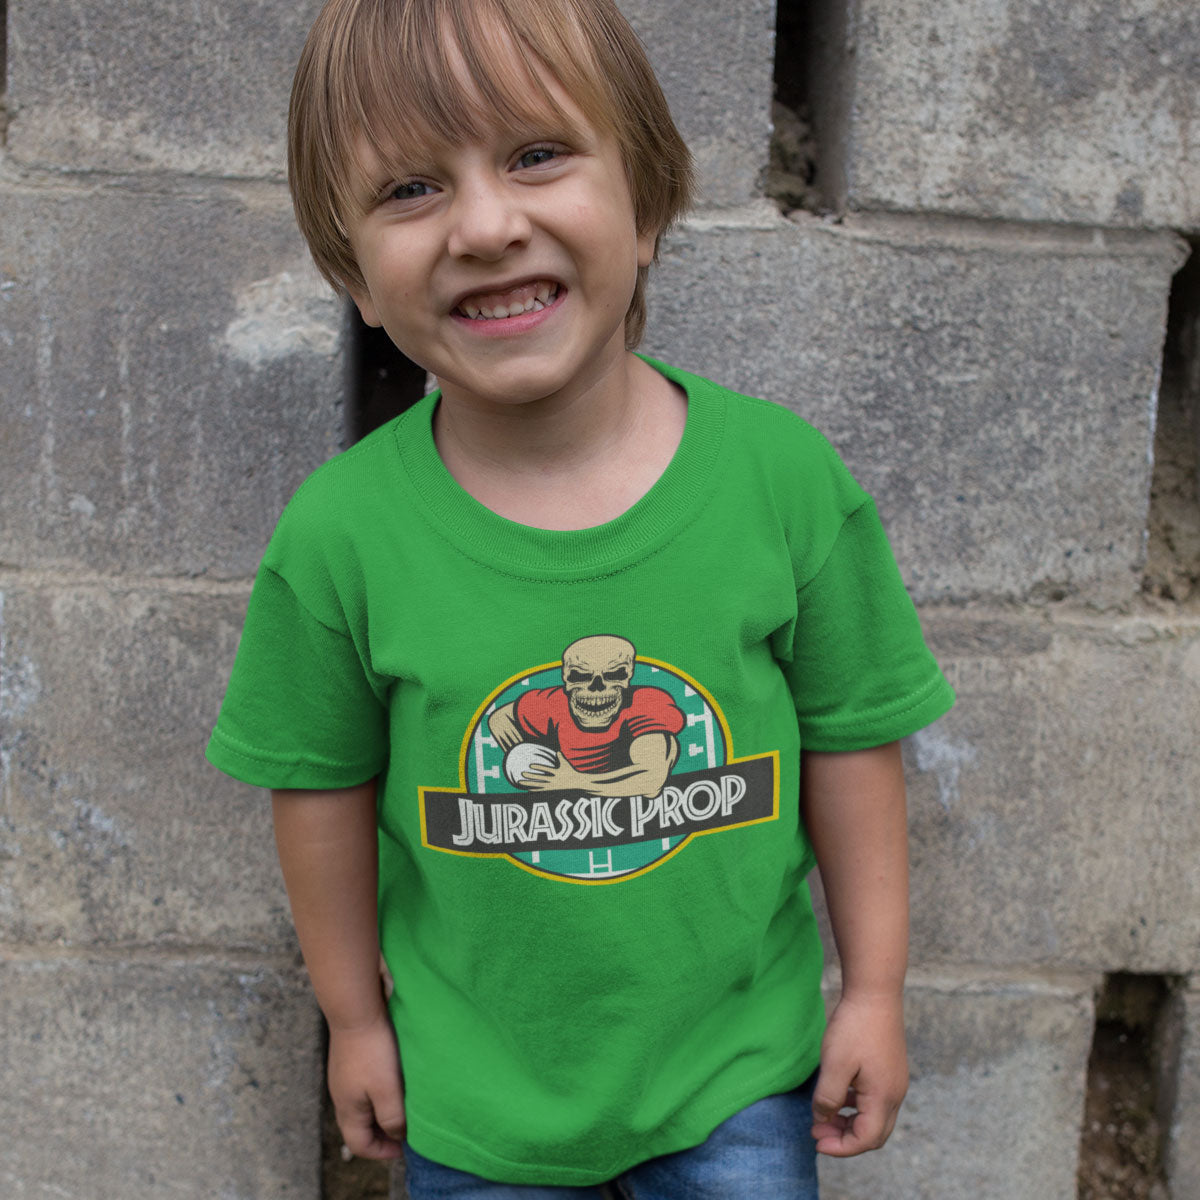 Kid's Jurassic Prop Rugby Tee - First XV rugbystuff.com